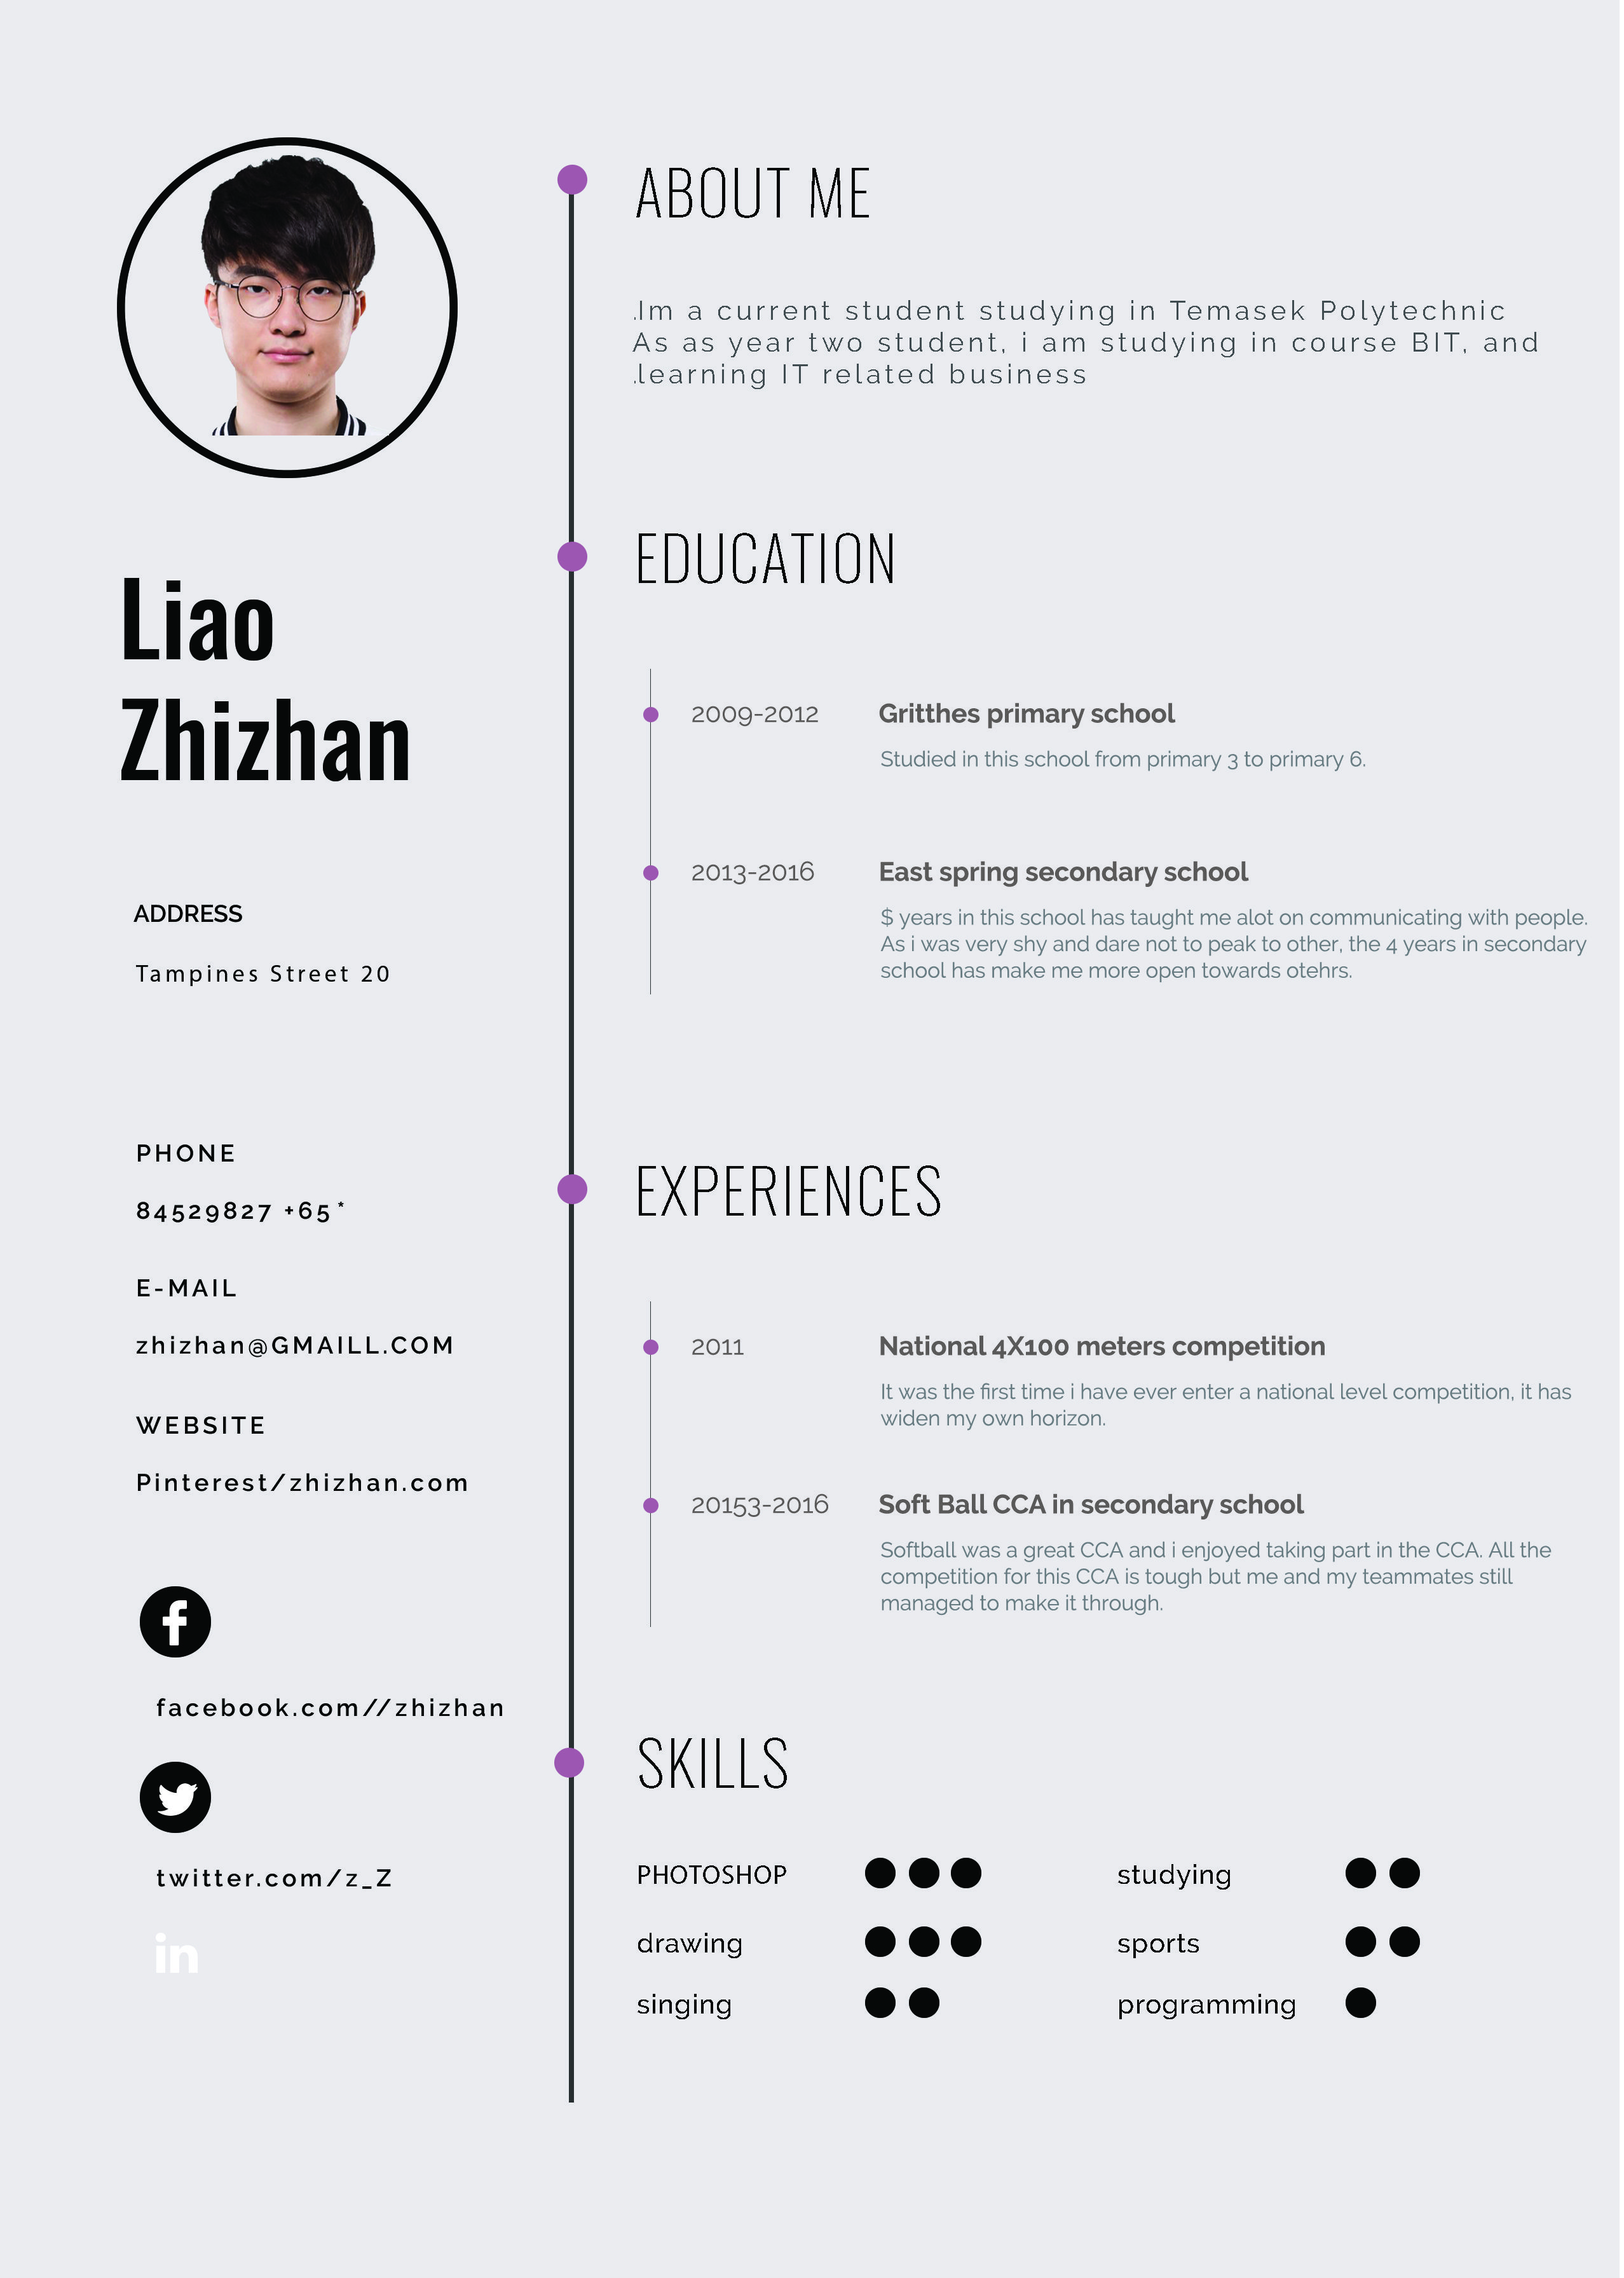 My Resume Created Using Photoshop Skills From Tutorial 5 The